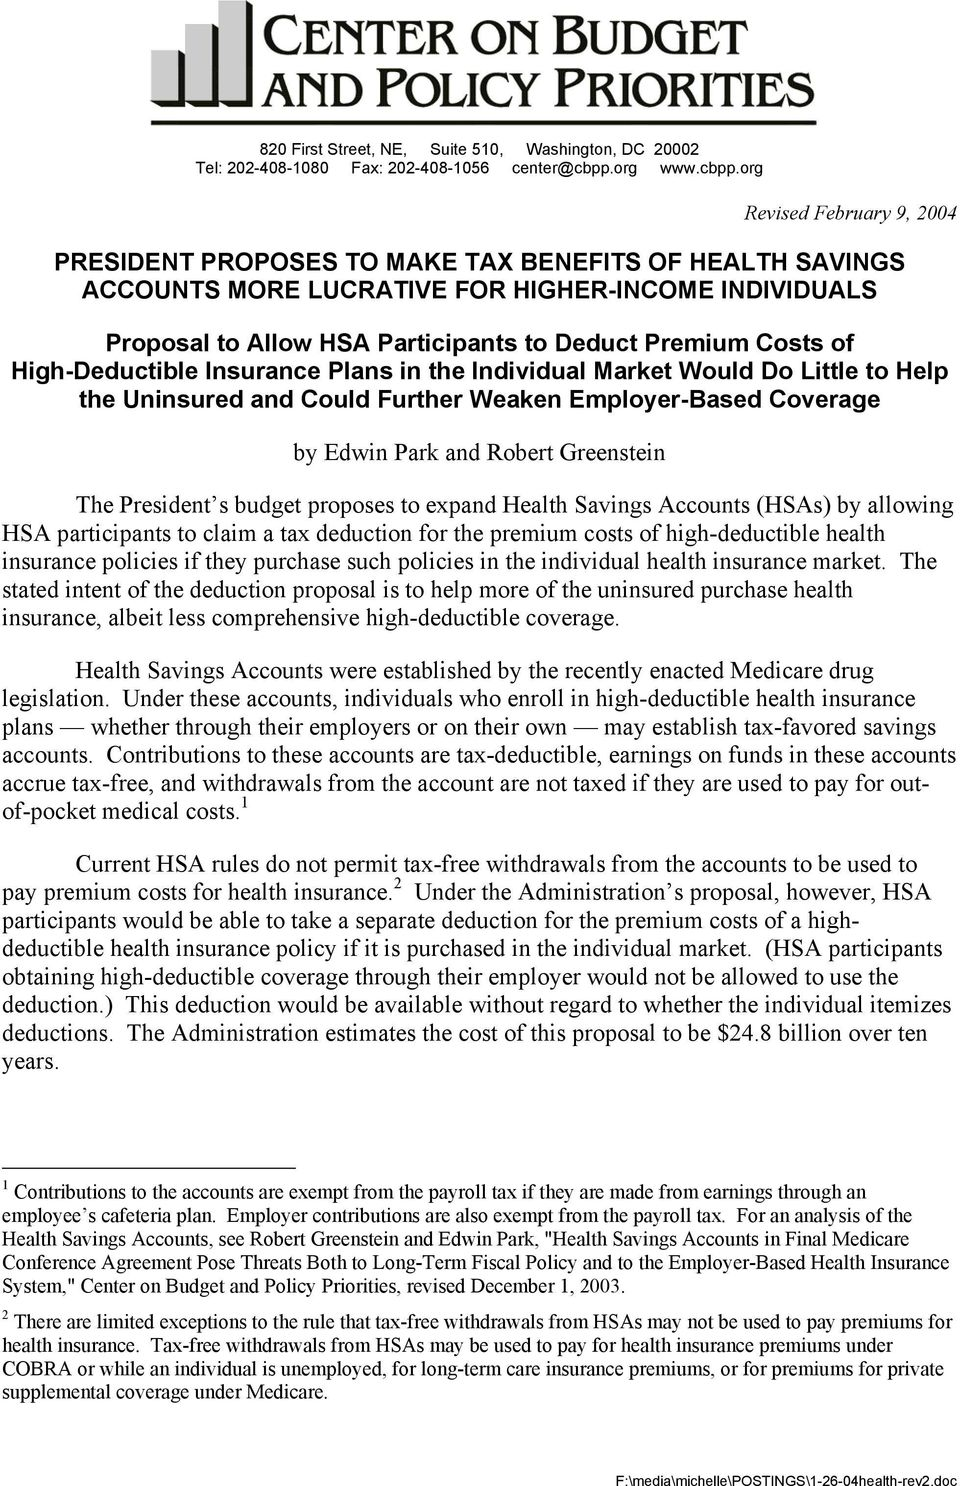 org Revised February 9, 2004 PRESIDENT PROPOSES TO MAKE TAX BENEFITS OF HEALTH SAVINGS ACCOUNTS MORE LUCRATIVE FOR HIGHER-INCOME INDIVIDUALS Proposal to Allow HSA Participants to Deduct Premium Costs